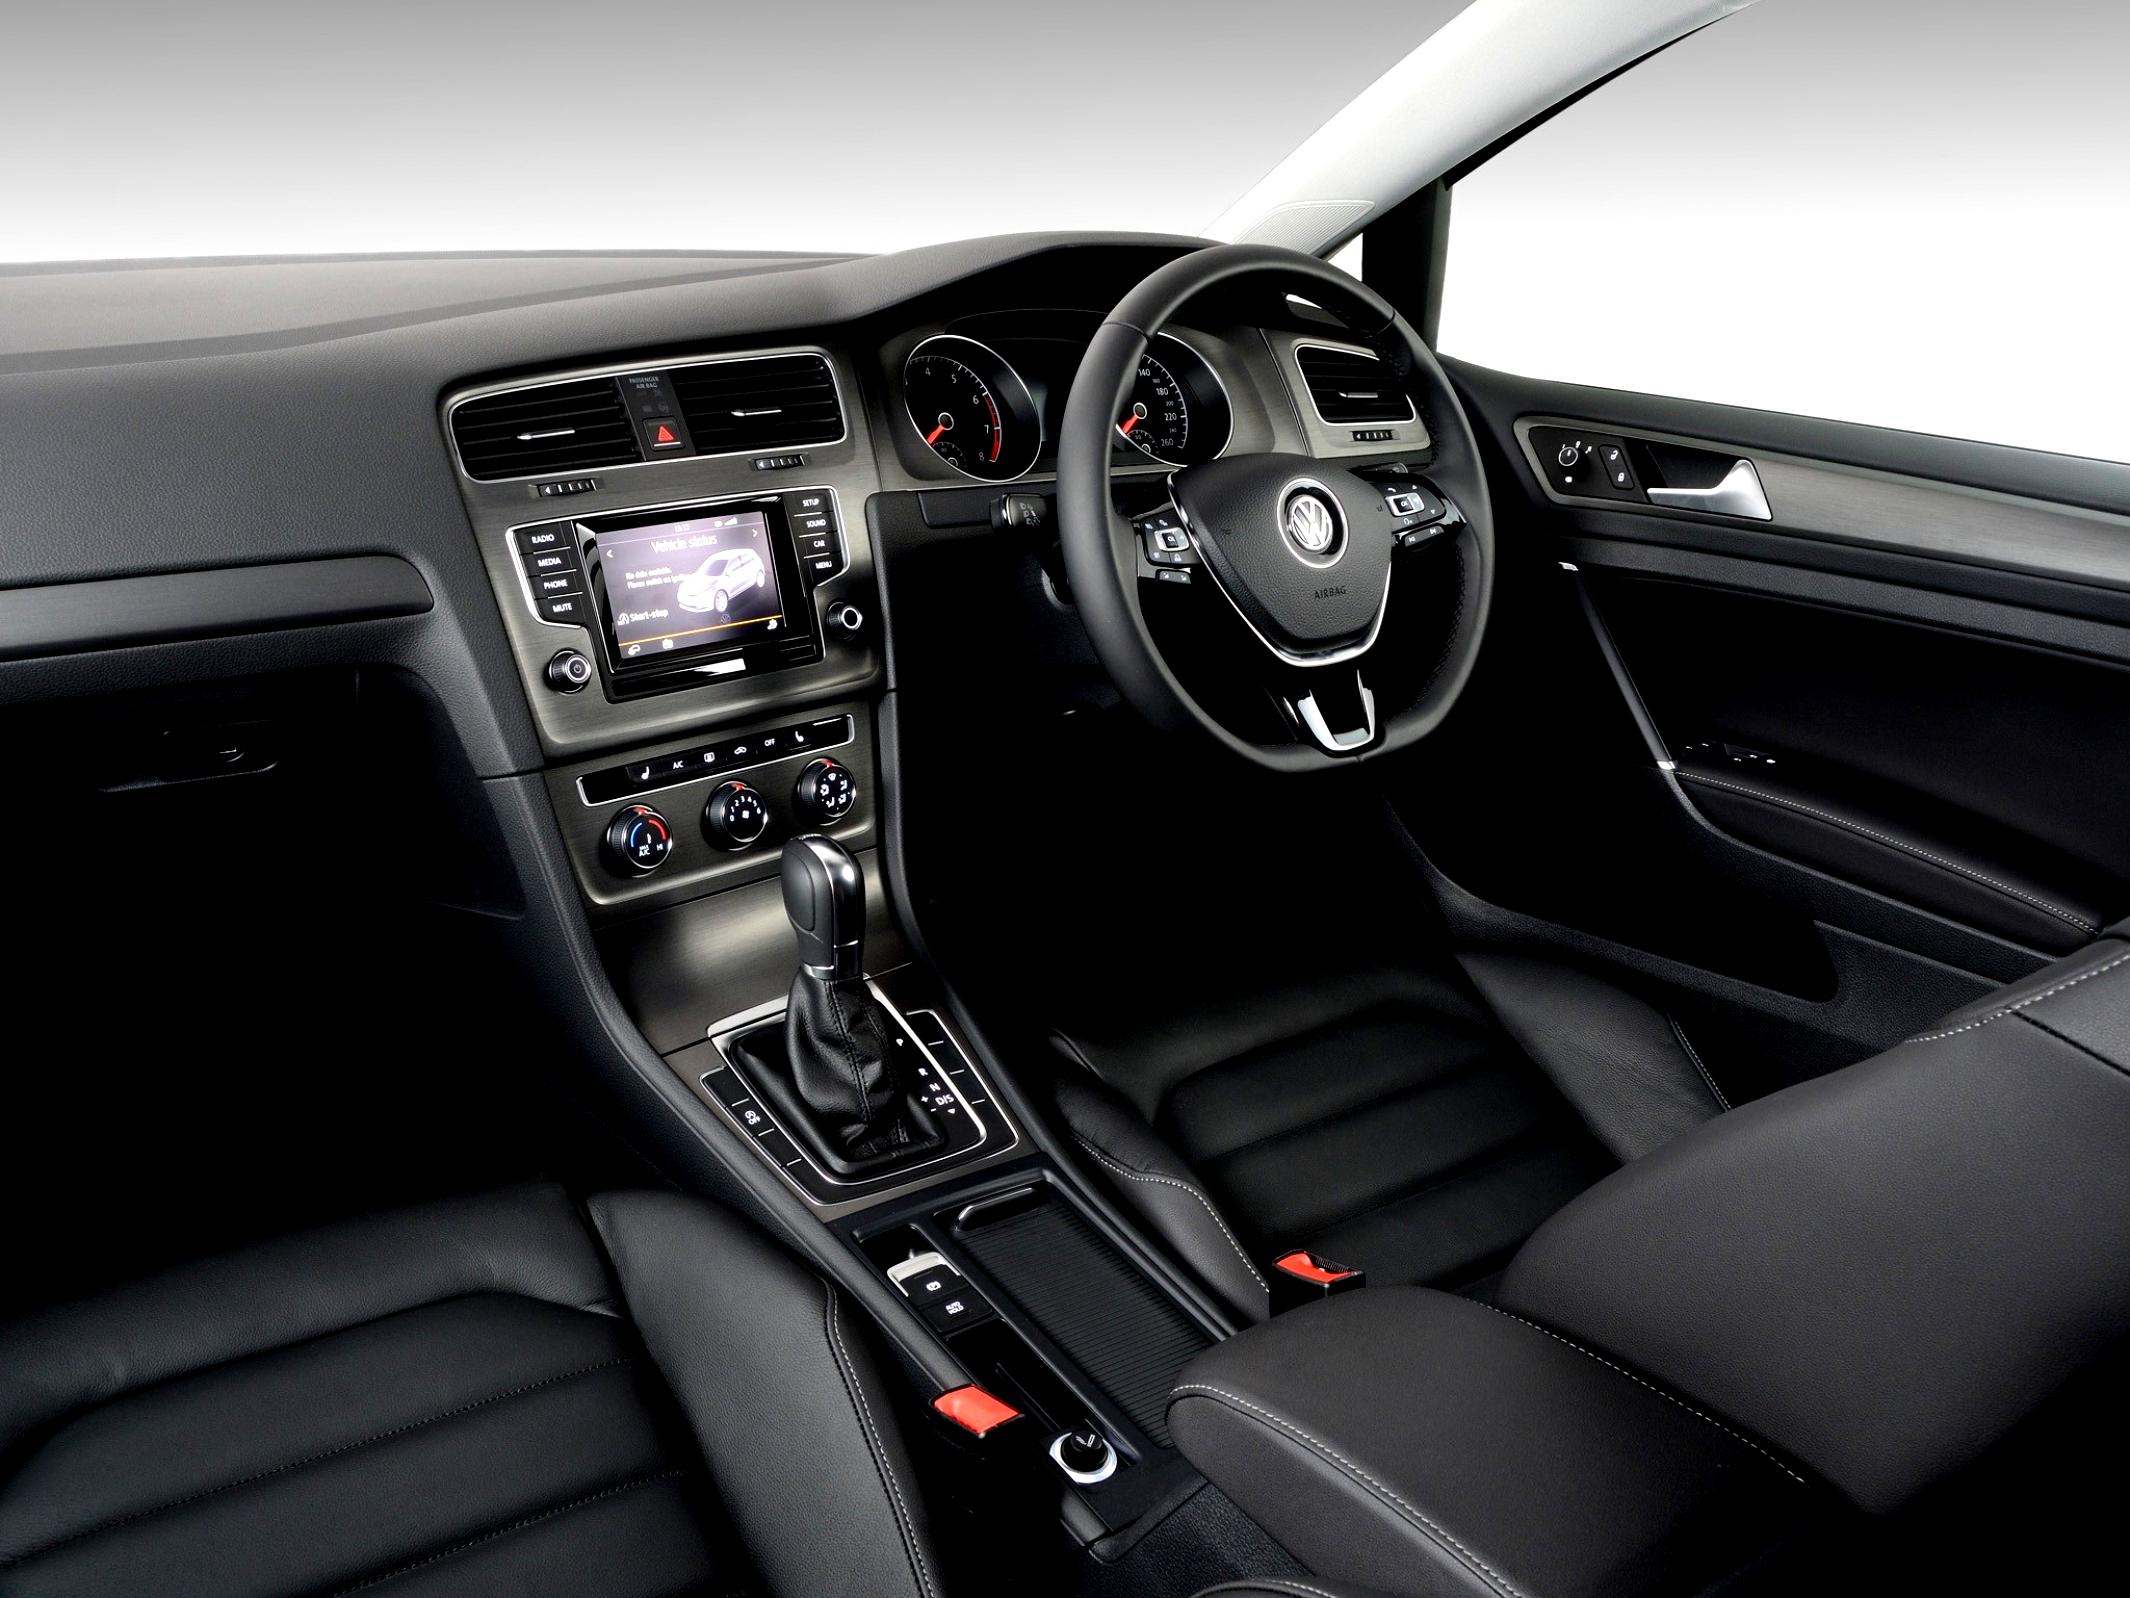 Volkswagen Golf VII 5 Doors 2012 #97